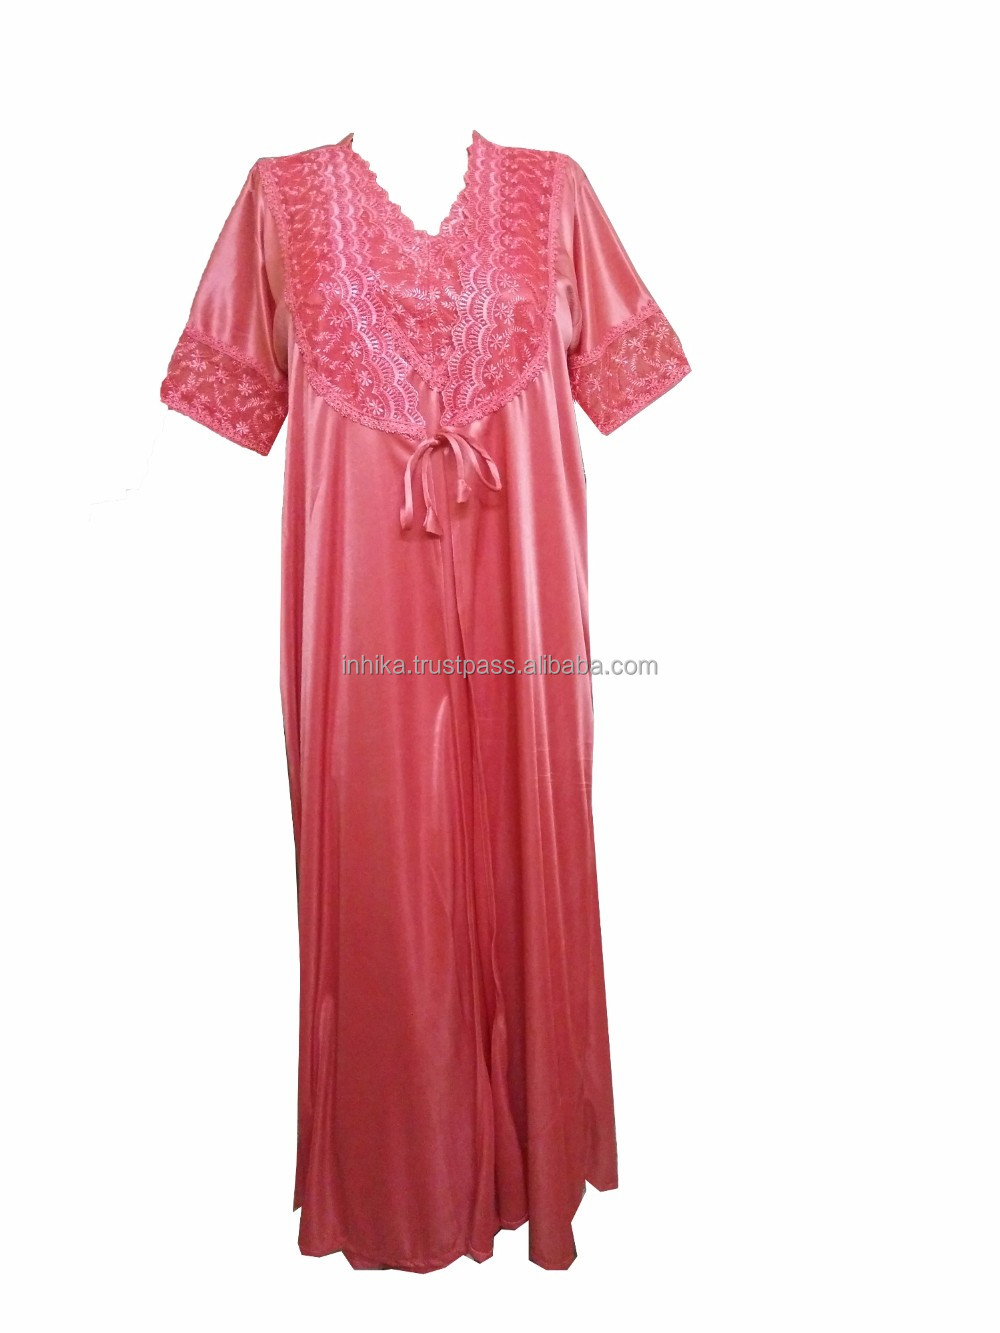 Ladies Women Satin 2 pieces set Nighty Night Gown Night Suit House Coat Night Wear 2903